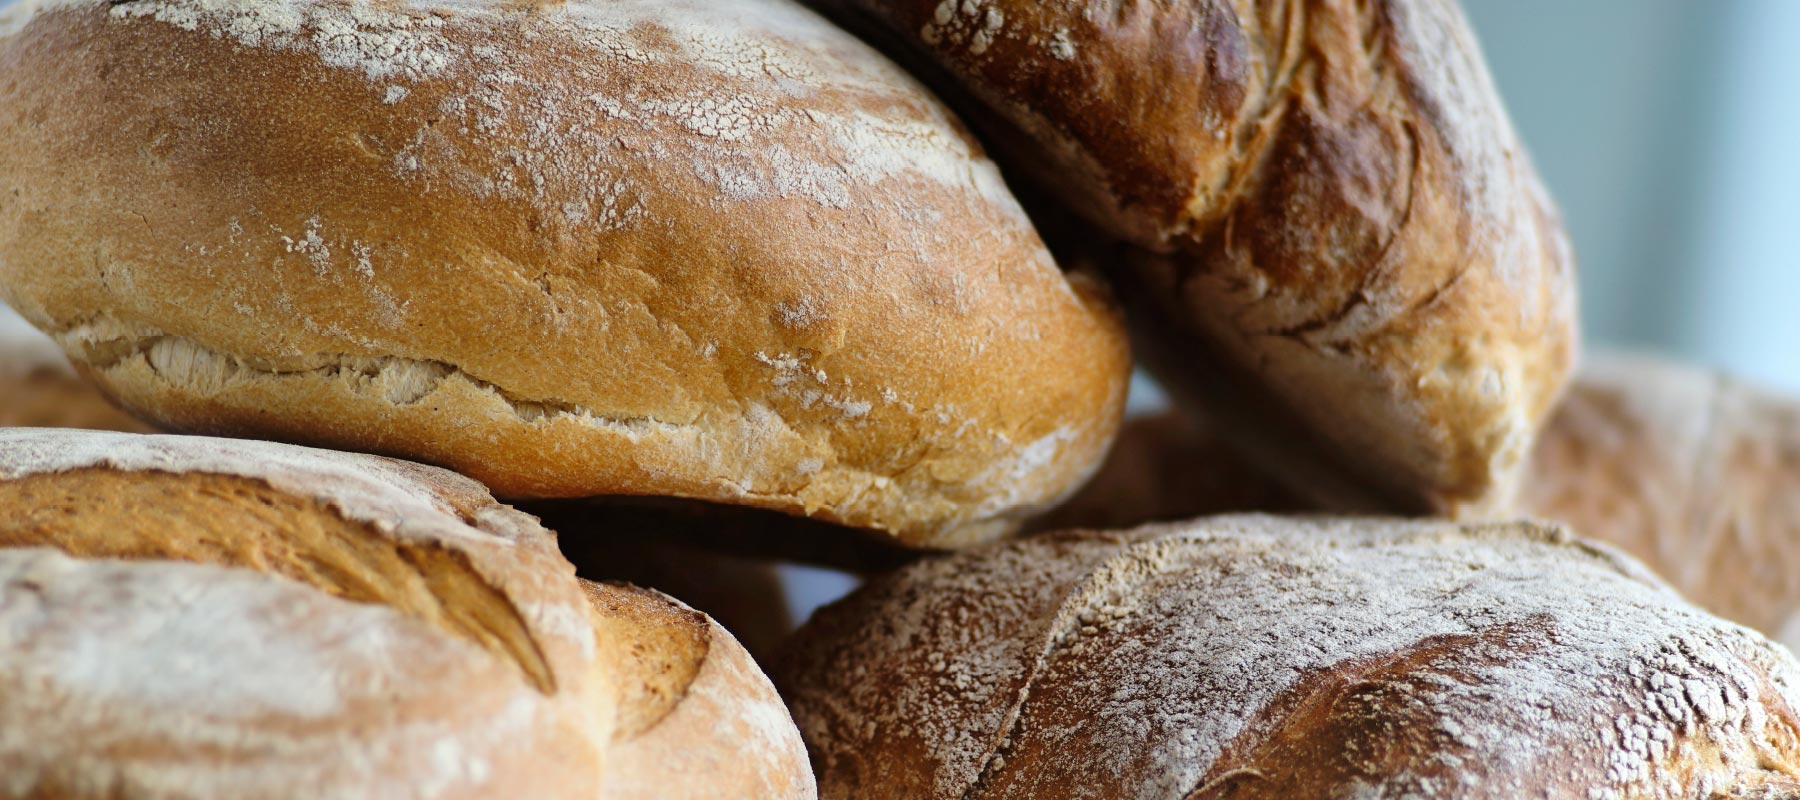 Bread - Rustico and Mafra, baguettes, wholemeal and plenty more